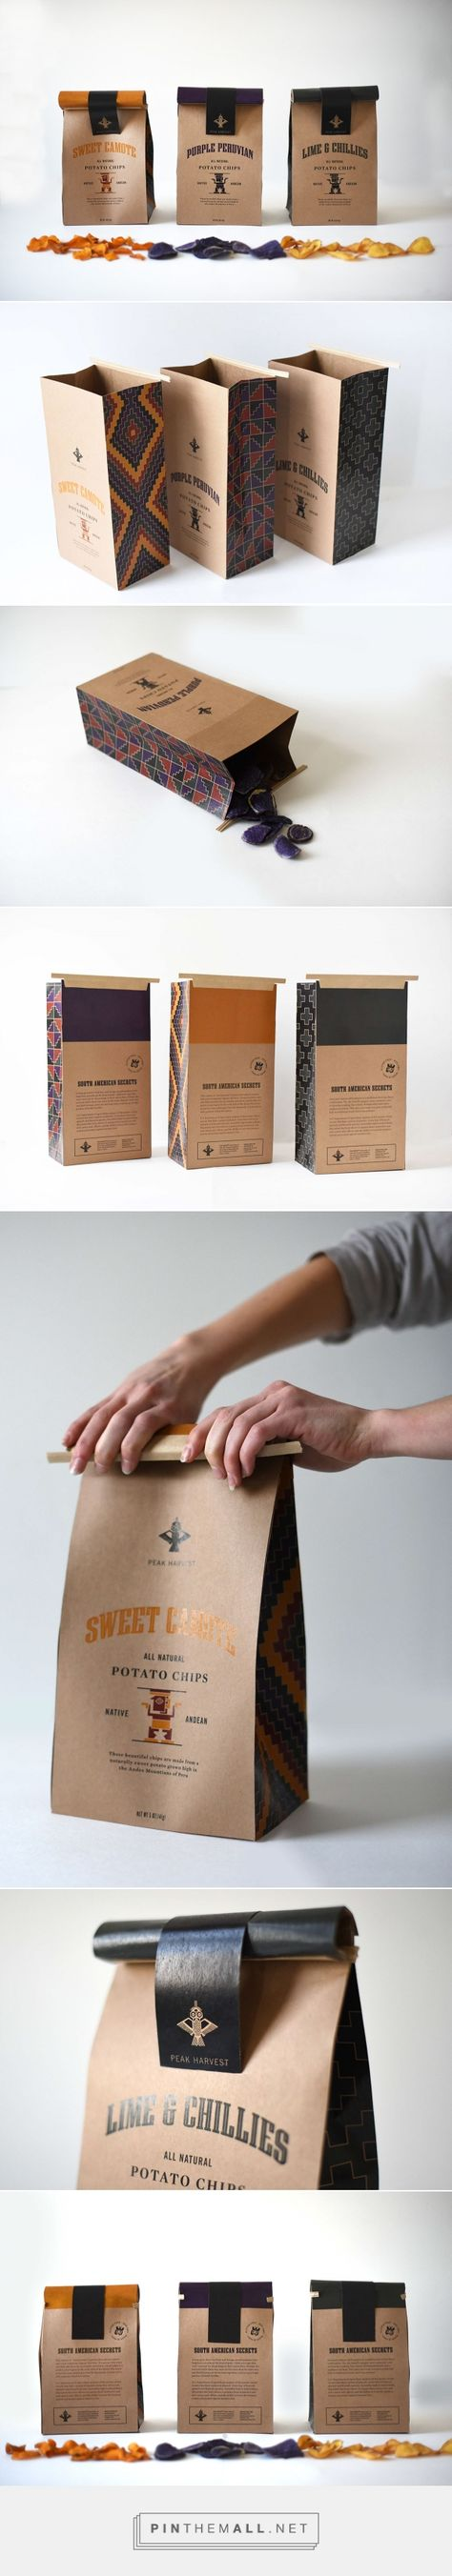 Branding, illustration and packaging for Potato Chips on Behance by Josie Mazsk Charleston, SC curated by Packaging Diva PD. Redesigned chip bags are made from 40% recycled natural kraft paper and lined with PLA, a renewable and compostable film made from corn.